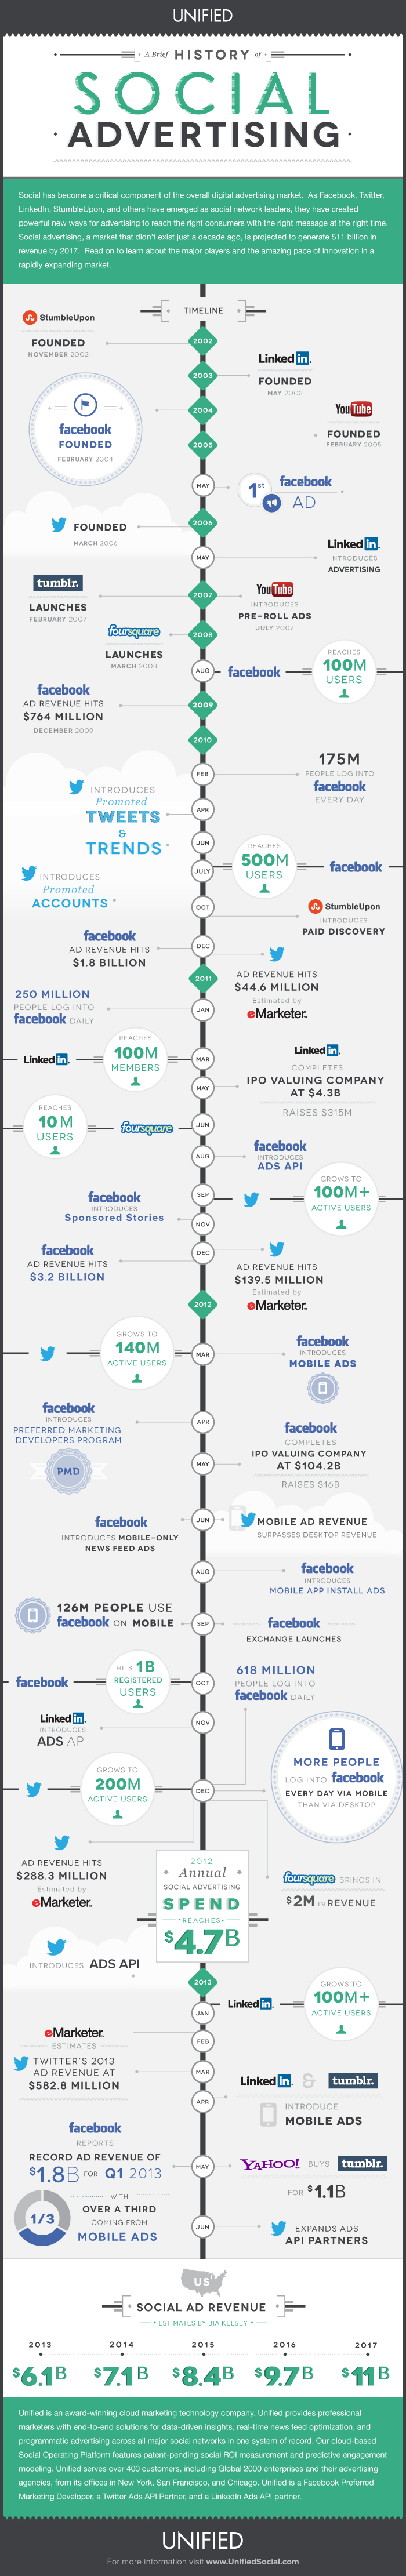 A Brief History of Social Advertising